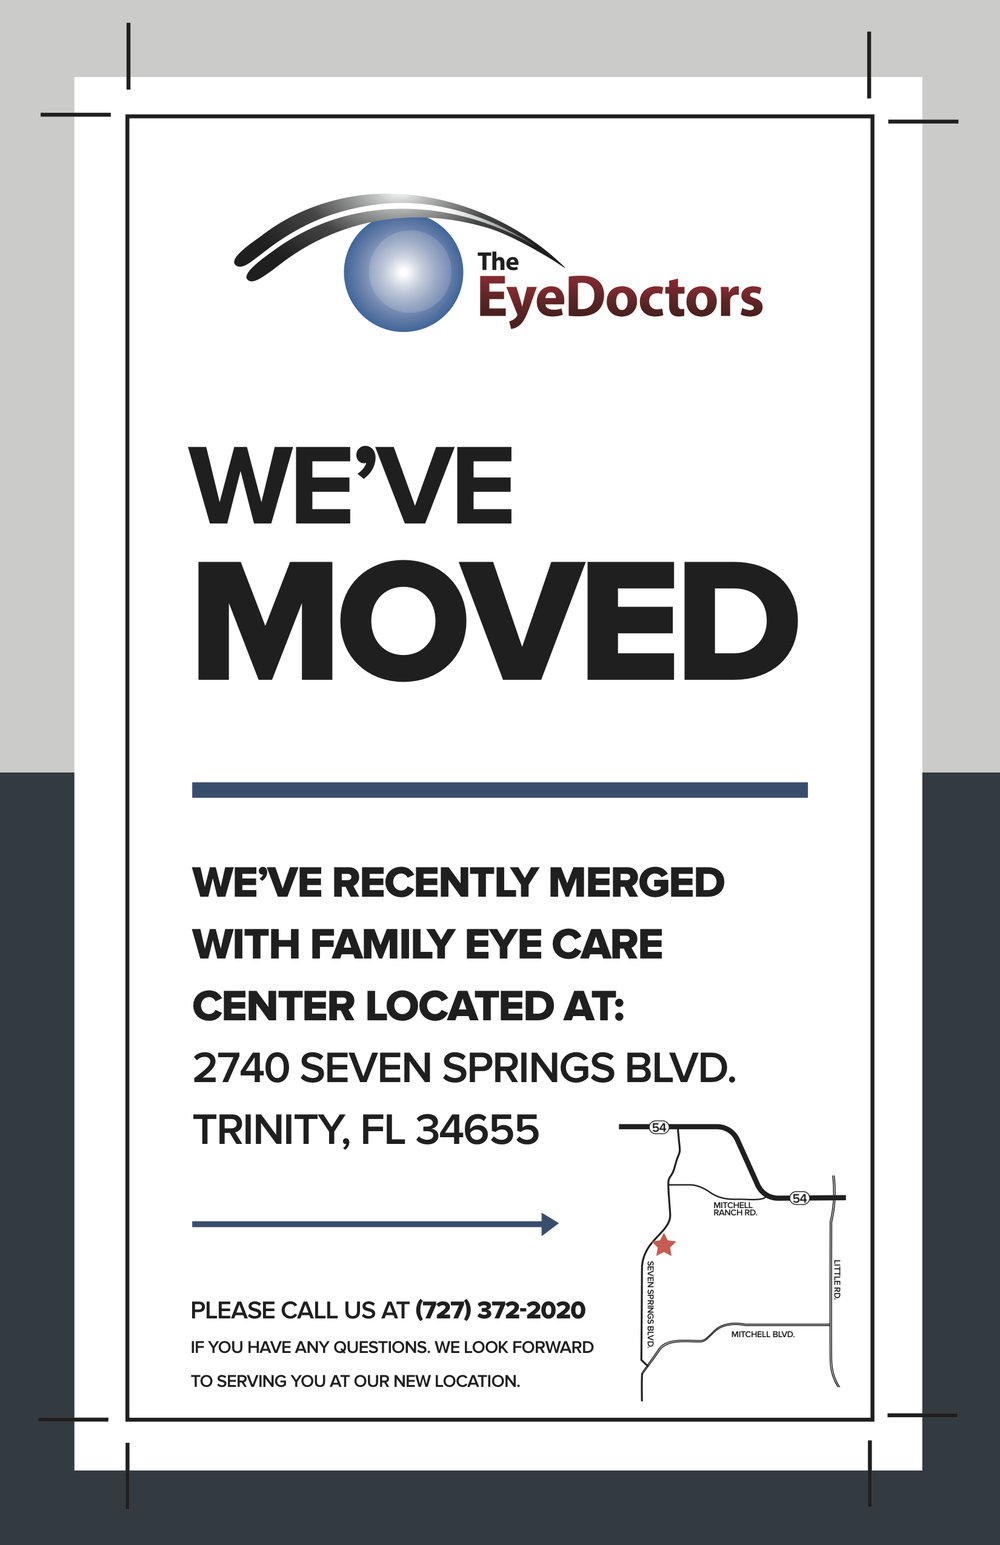 Farmore Marketing created a poster for The Eye Doctors to hang outside their old location to let customers know they have changed locations